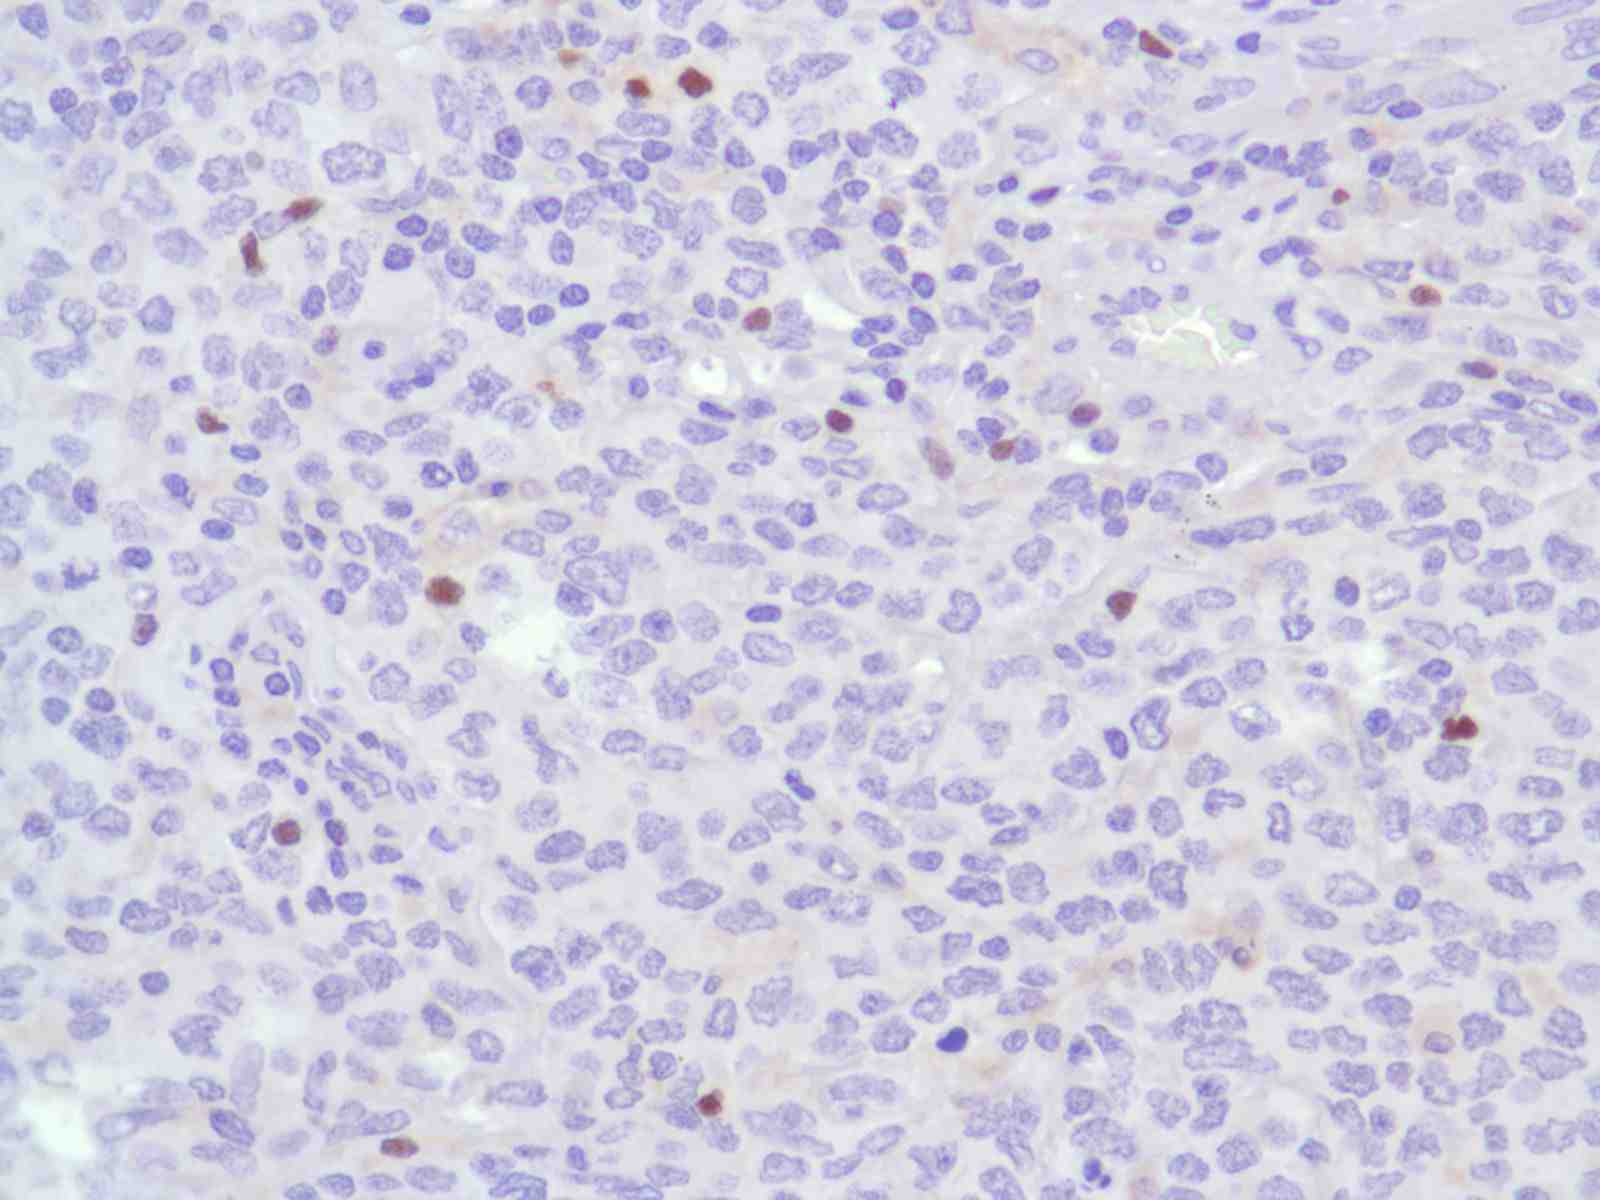 Human B-Cell Lymphoma stained with anti-FoxP3 antibody